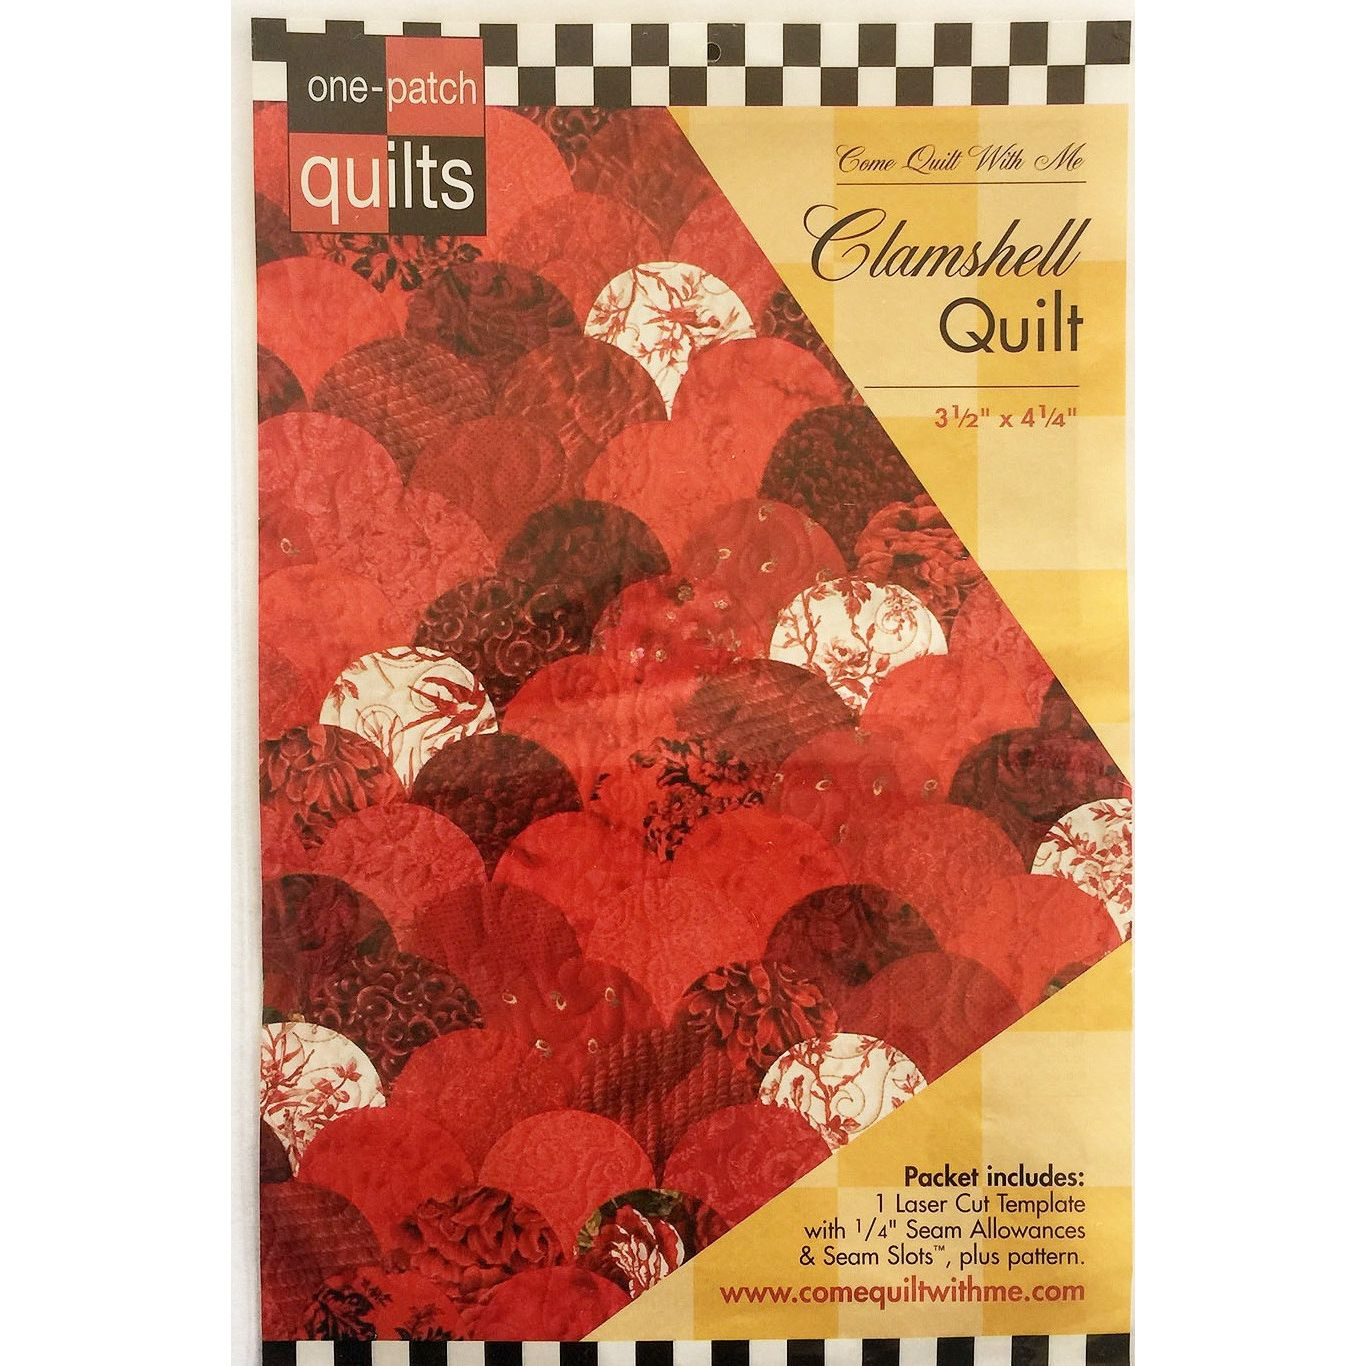 Clamshell One Patch Pattern & Template by Come Quilt with Me : patch it to me quilt - Adamdwight.com